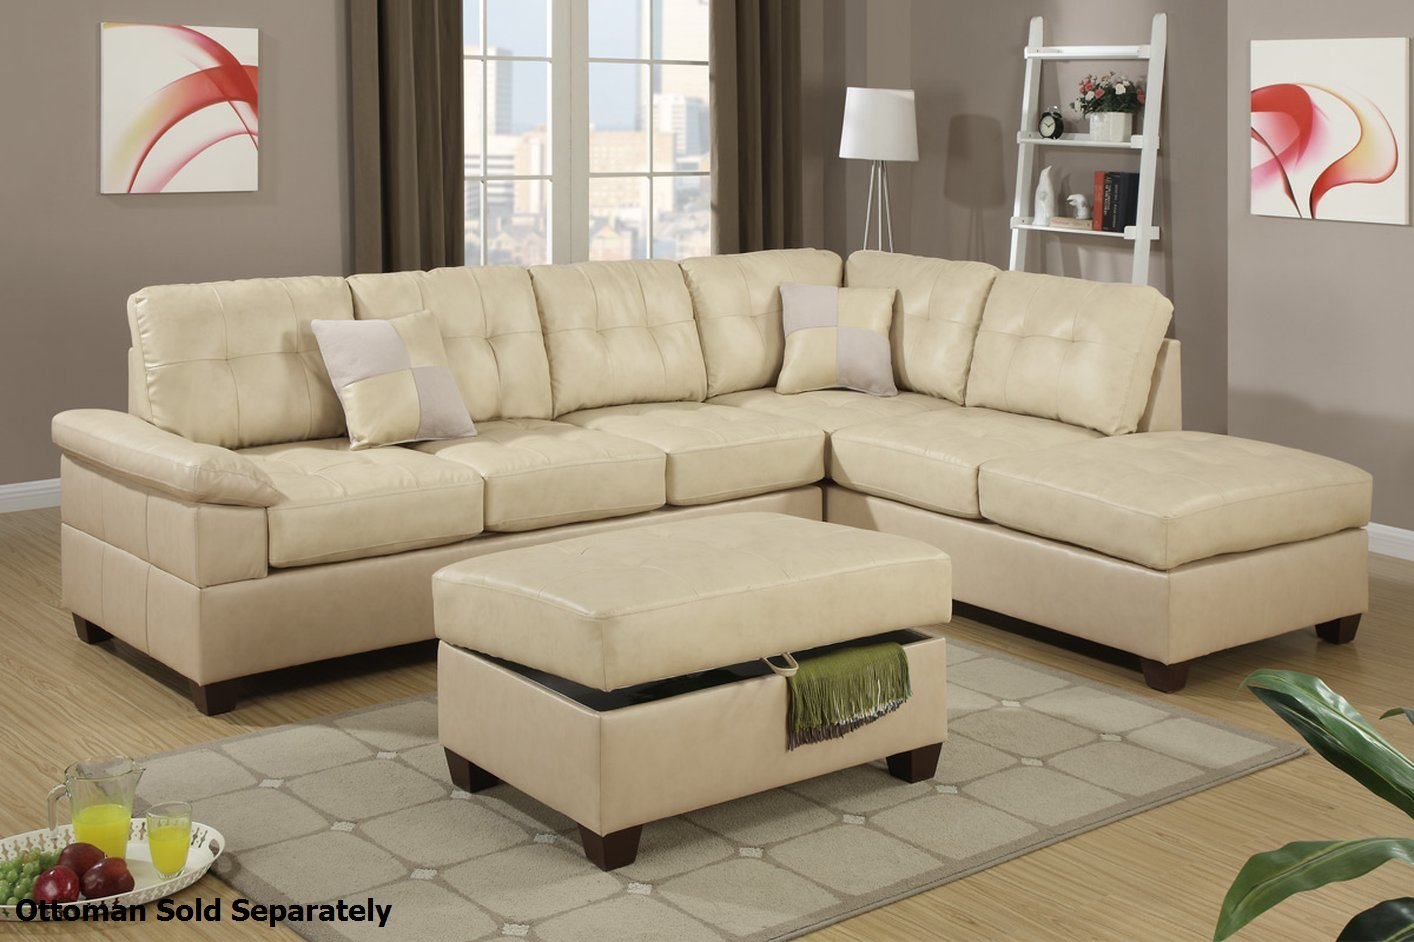 Poundex Reese F7520 Beige Leather Sectional Sofa Steal A